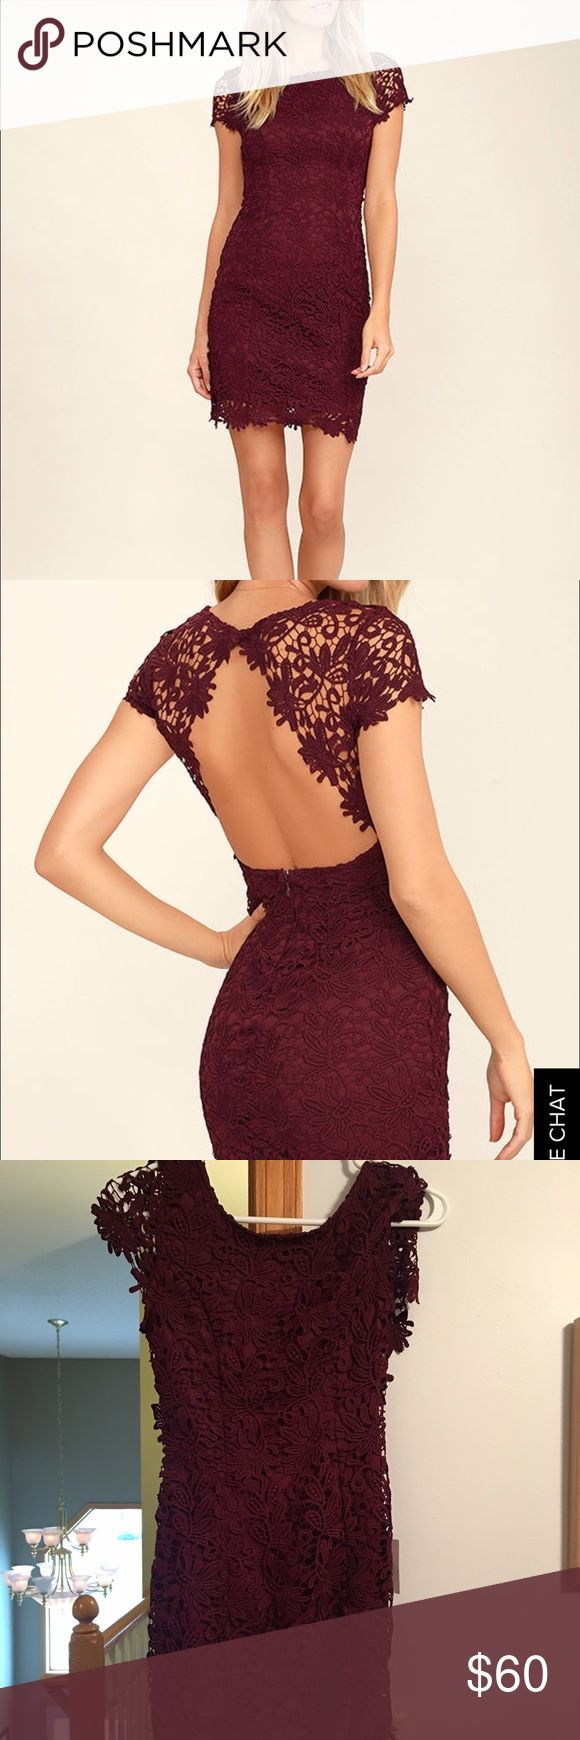 Dress Maroon, NEVER WORN, TAGS STILL ON. tight fitting lace dress Dresses Backless